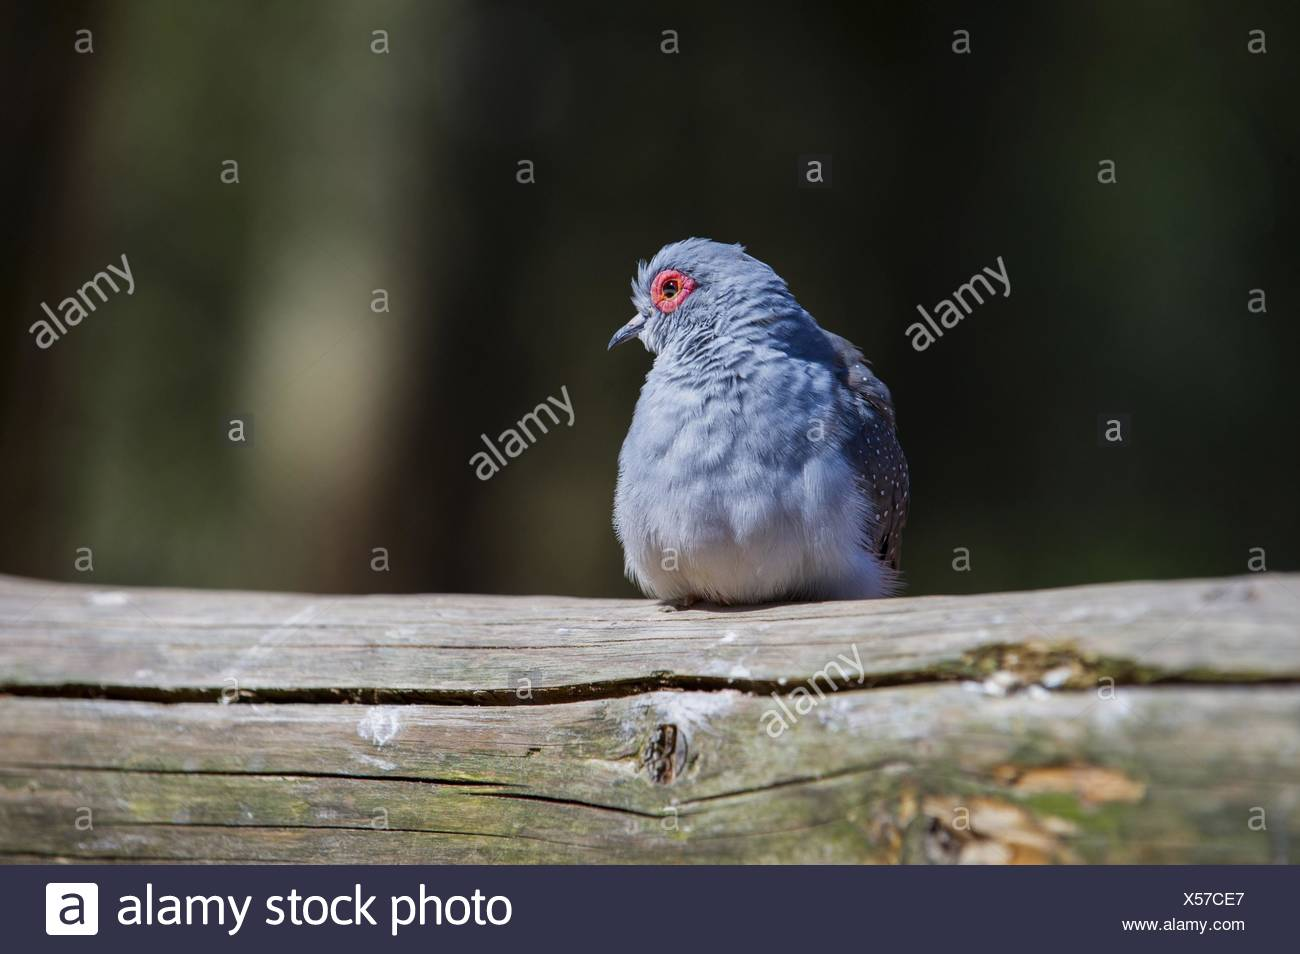 diamond dove Bird Park Marlow - Stock Image